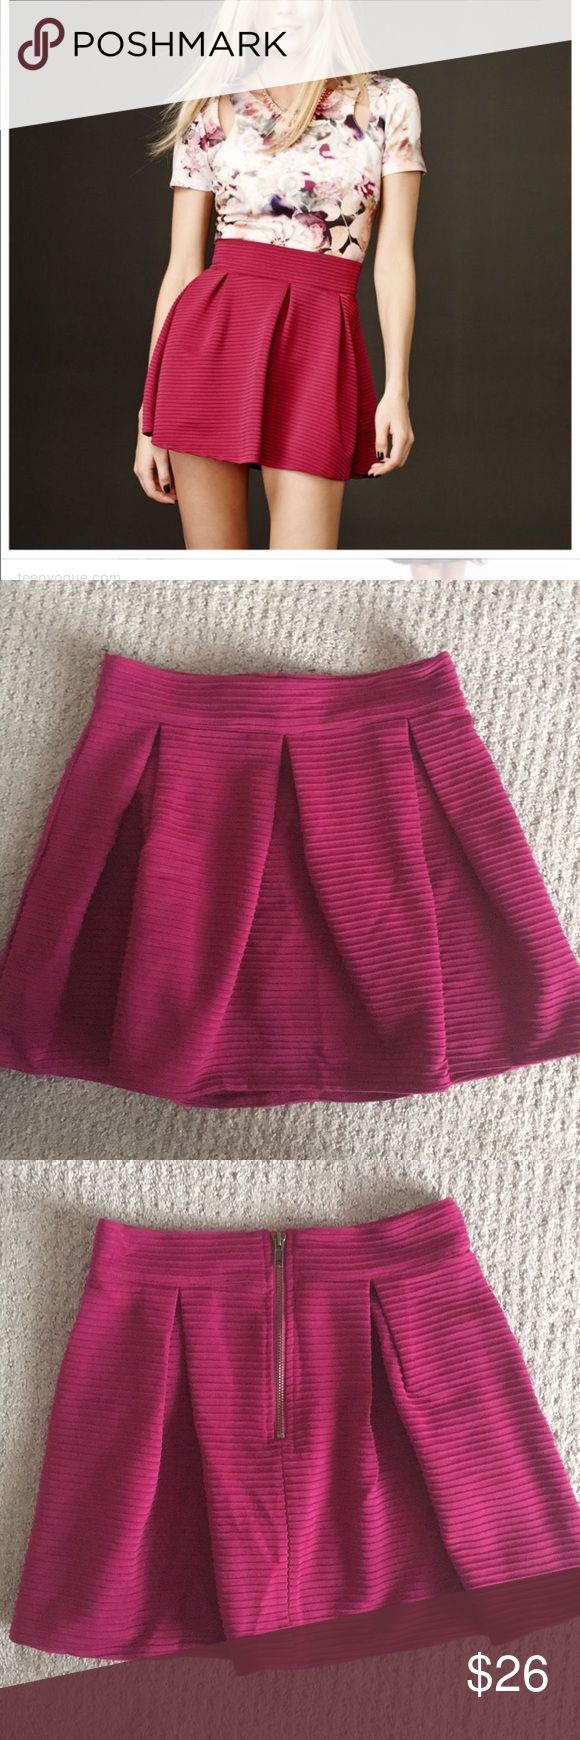 Pretty Little Liars Hanna Skirt I only wore this skirt once! It's super cute, and it's in great condition! It's more of a plum color. It's a pleated skirt, with a ribbed knit material. Size small. It's part of the Pretty Little Liars Line from Aeropostale! Aeropostale Skirts Mini